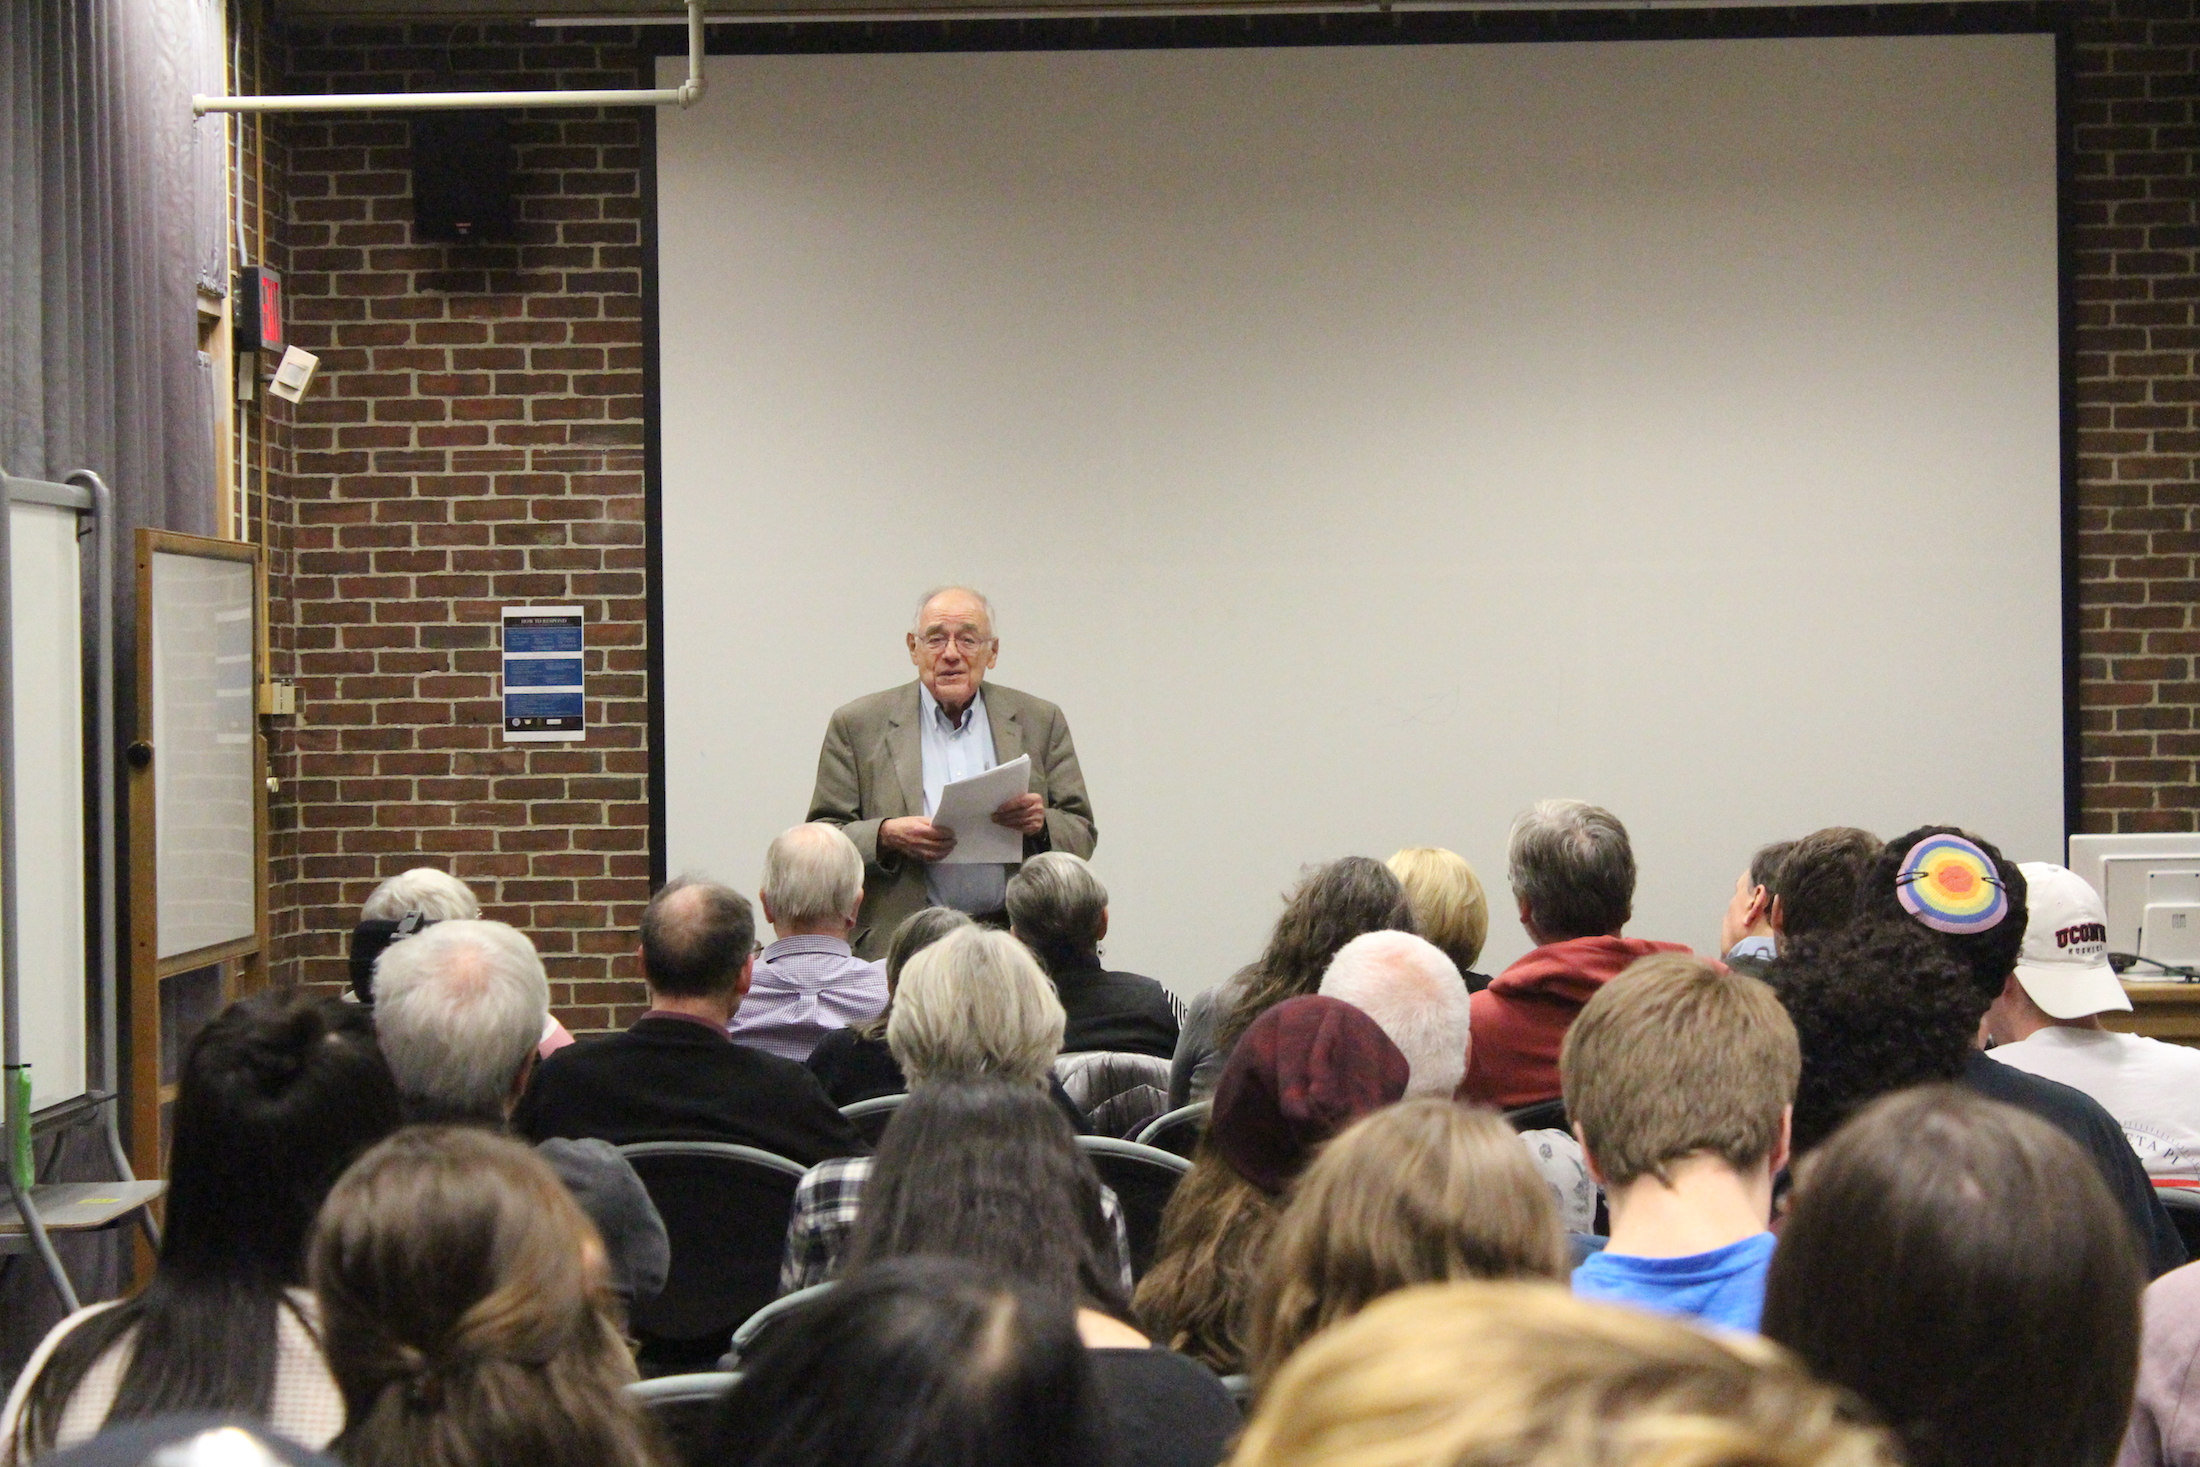 """Holocaust survivor Hans Laufer spoke at the Homer Babbidge Library before a screening of """"Denial"""" on Wednesday. (Ryan Murace/The Daily Campus)"""